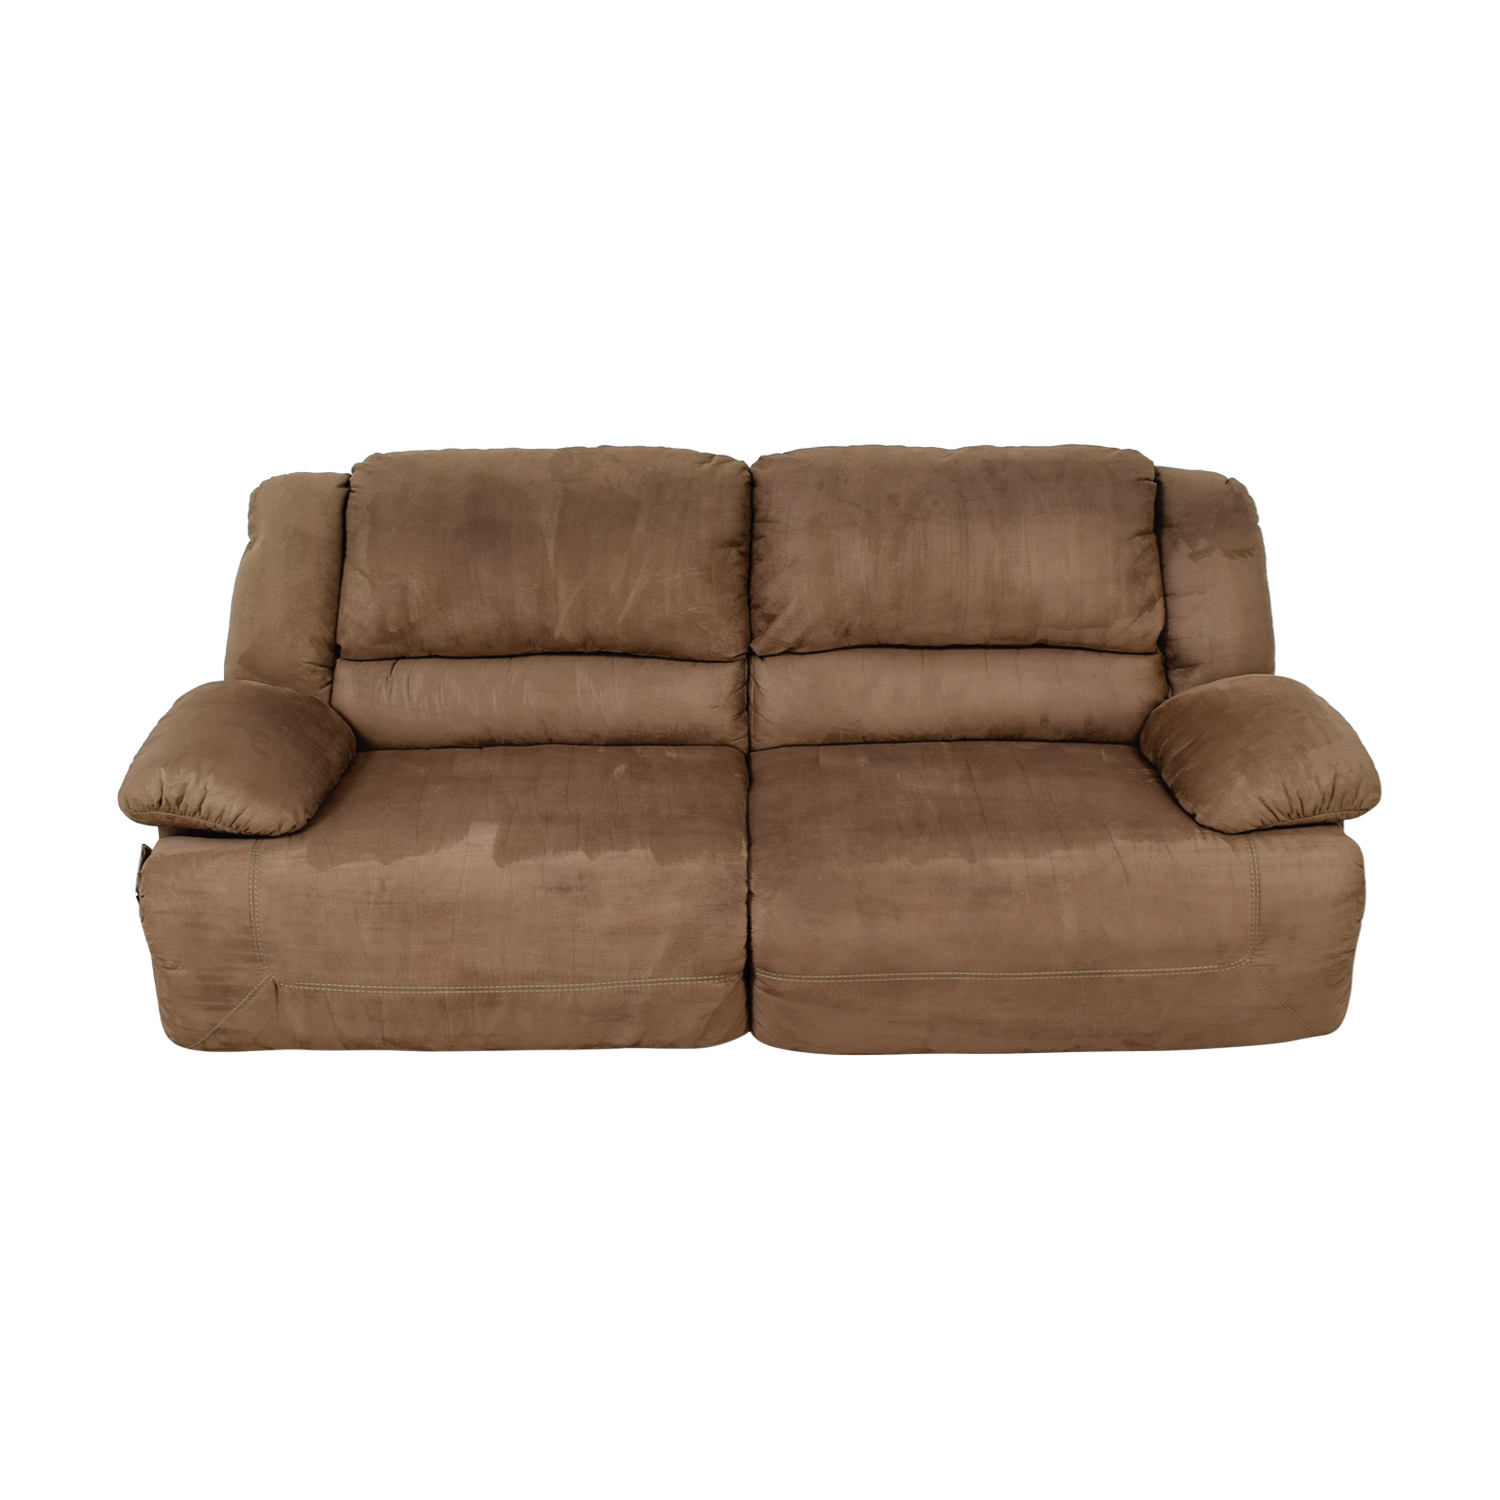 Ashley Furniture Ashley Furniture Mocha Reclining Sofa used